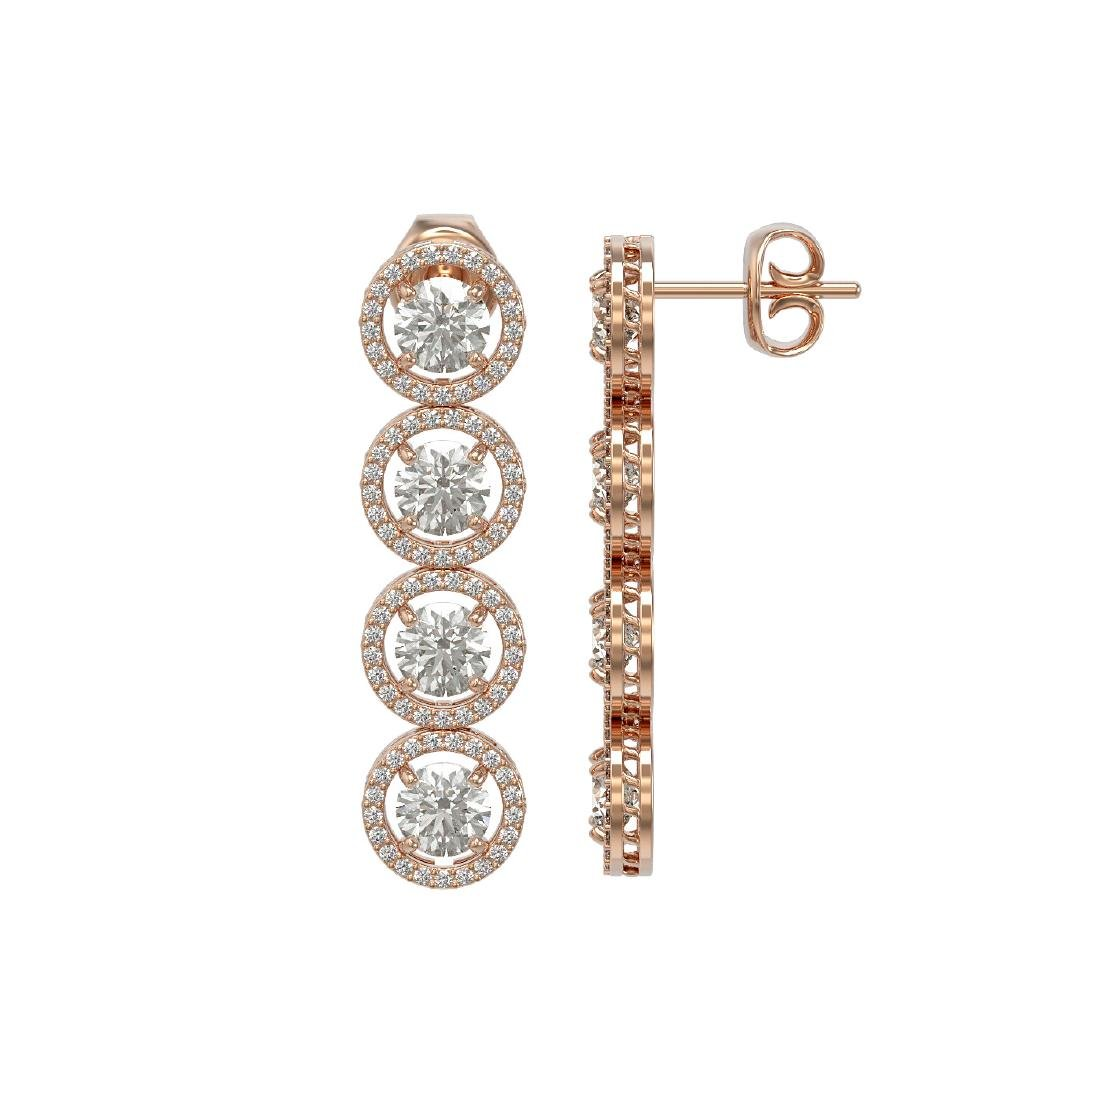 6.14 CTW Diamond Designer Earrings 18K Rose Gold - 2